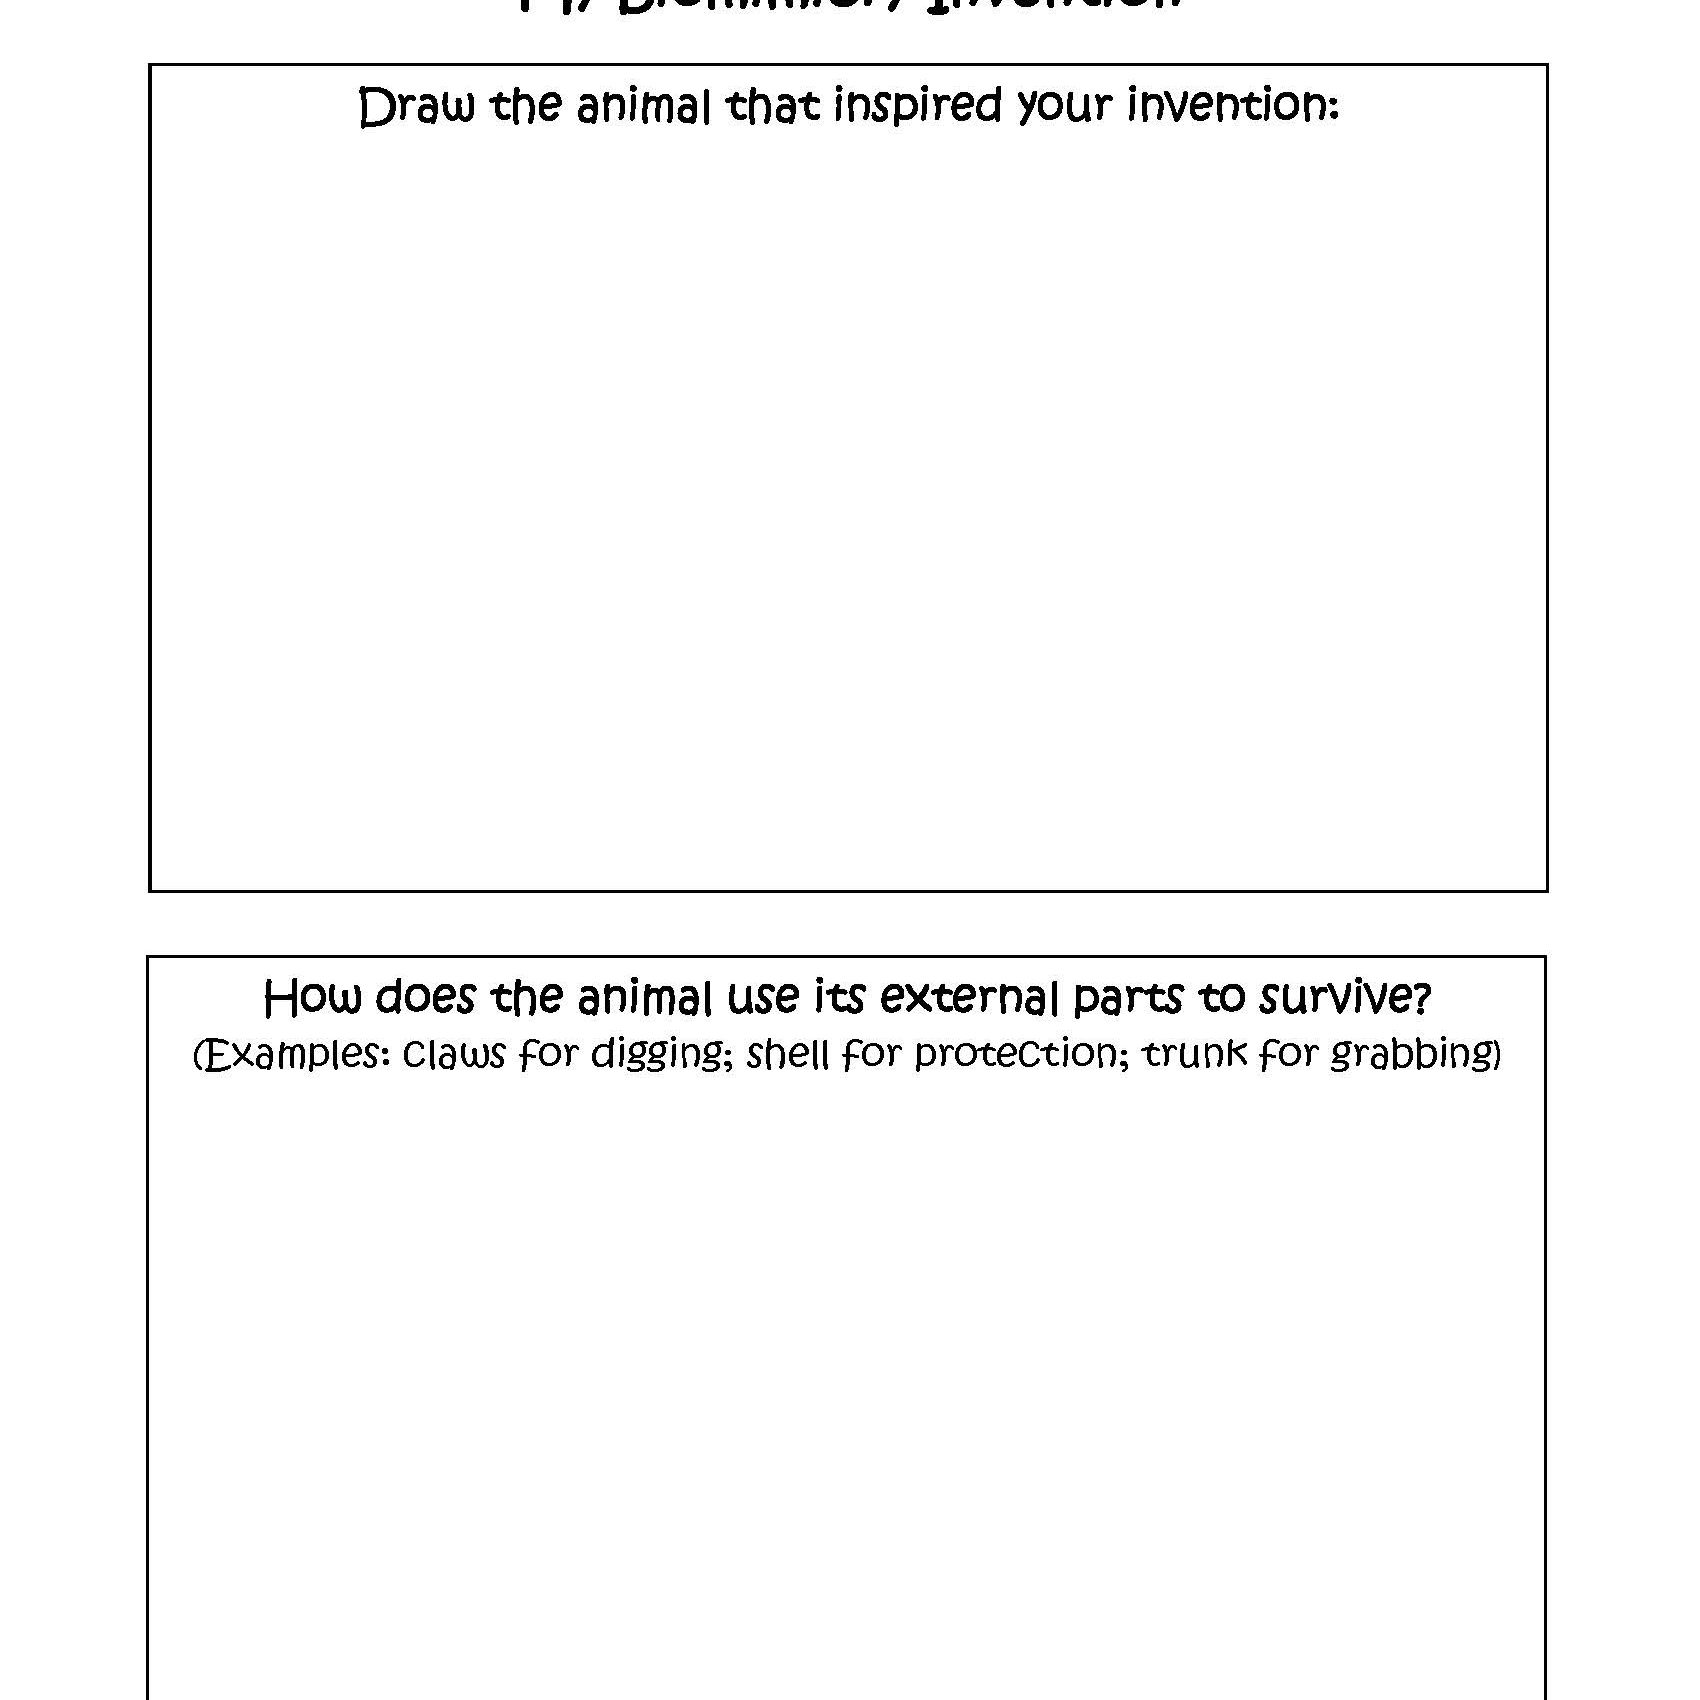 My Biomimicry Invention Worksheet_Page_1